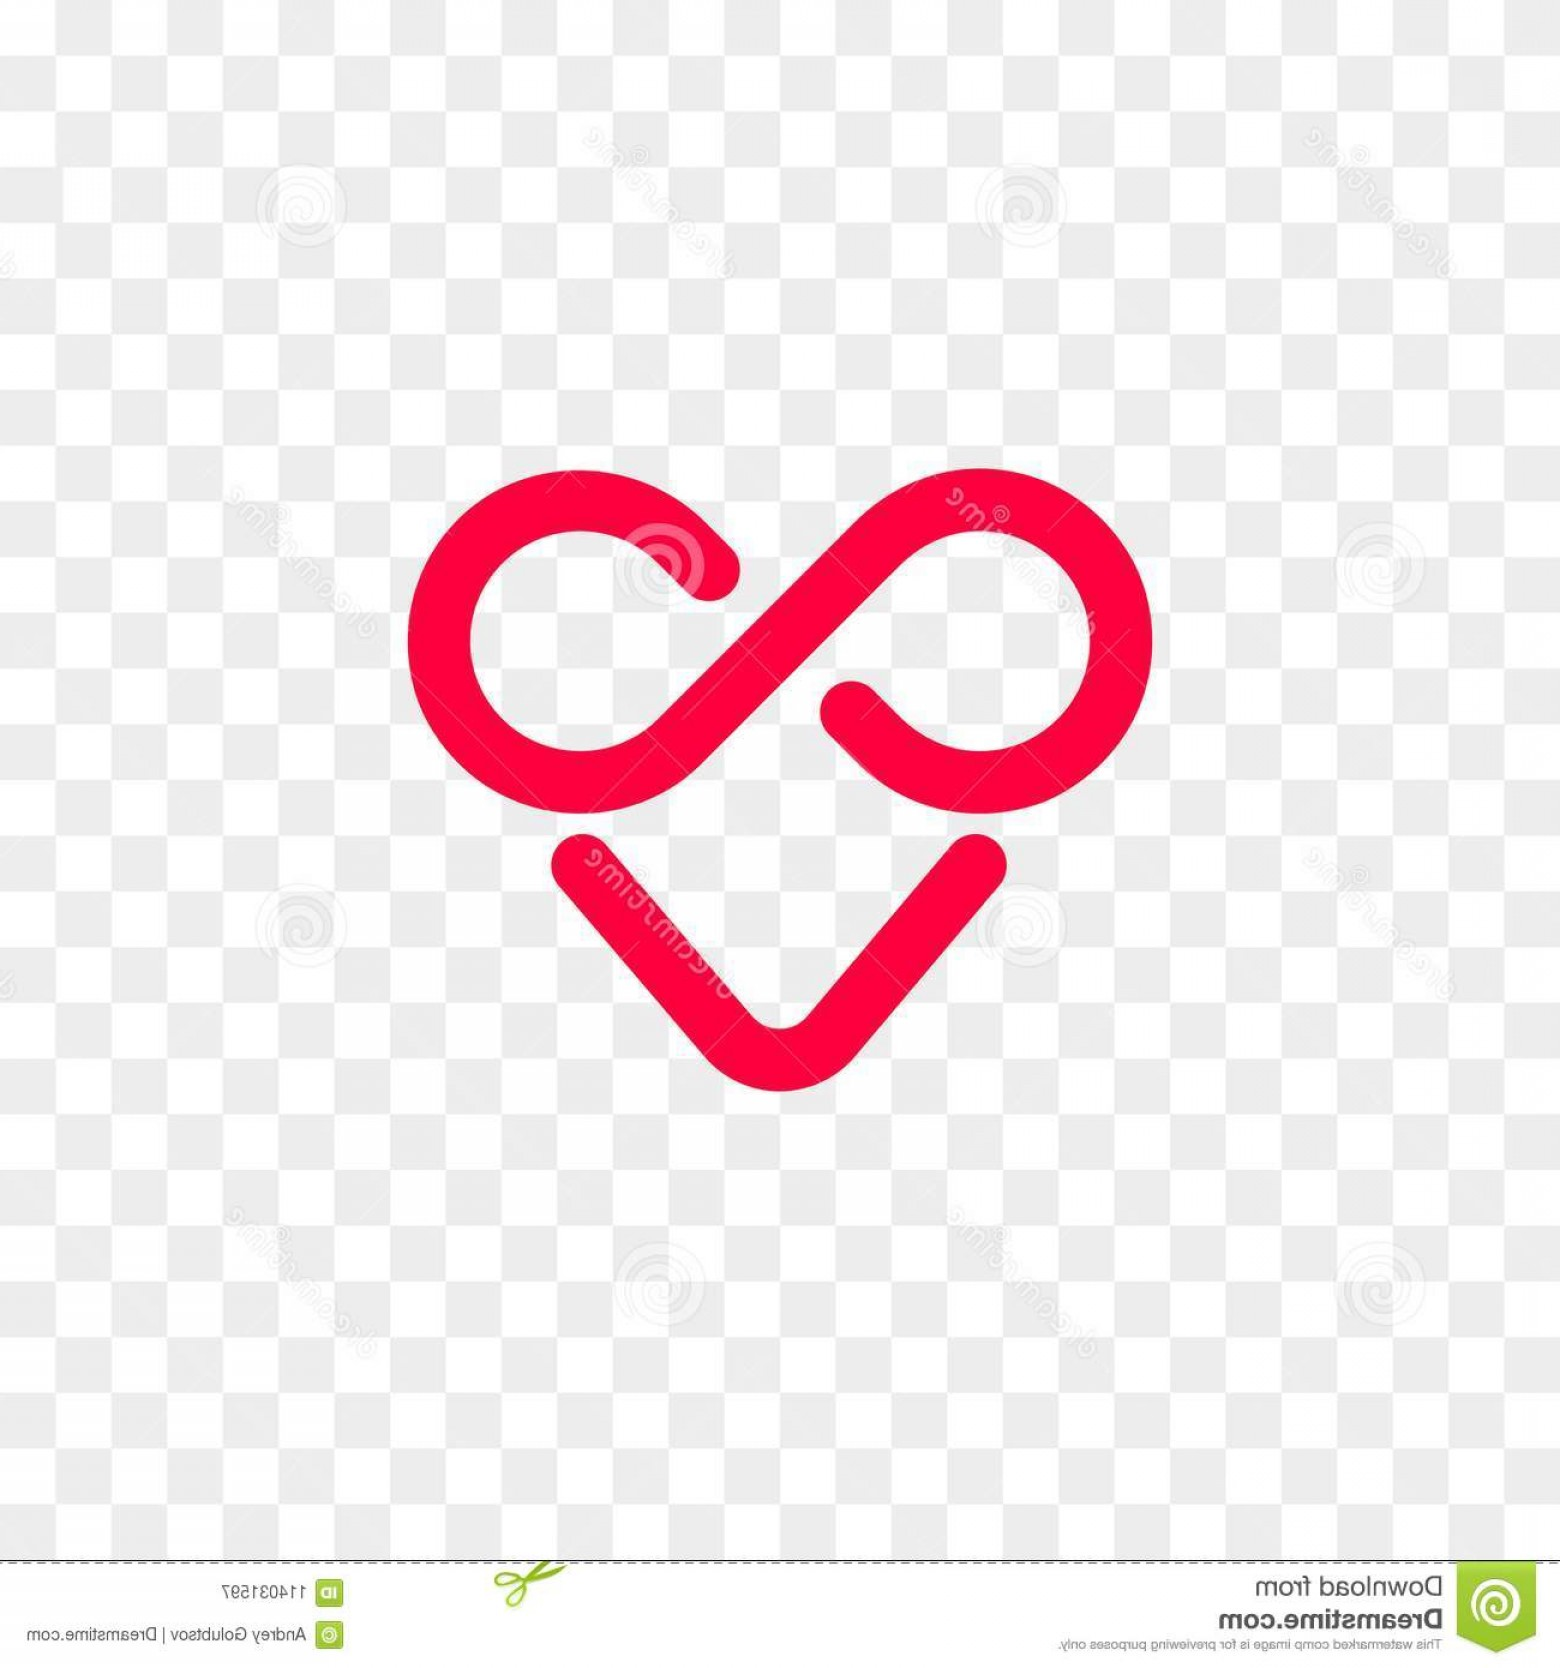 Vector Infinity Symbol Hearts: Heart Logo Vector Infinity Loop Icon Heart Logo Vector Infinity Loop Icon Isolated Modern Heart Symbol Cardiology Medical Image